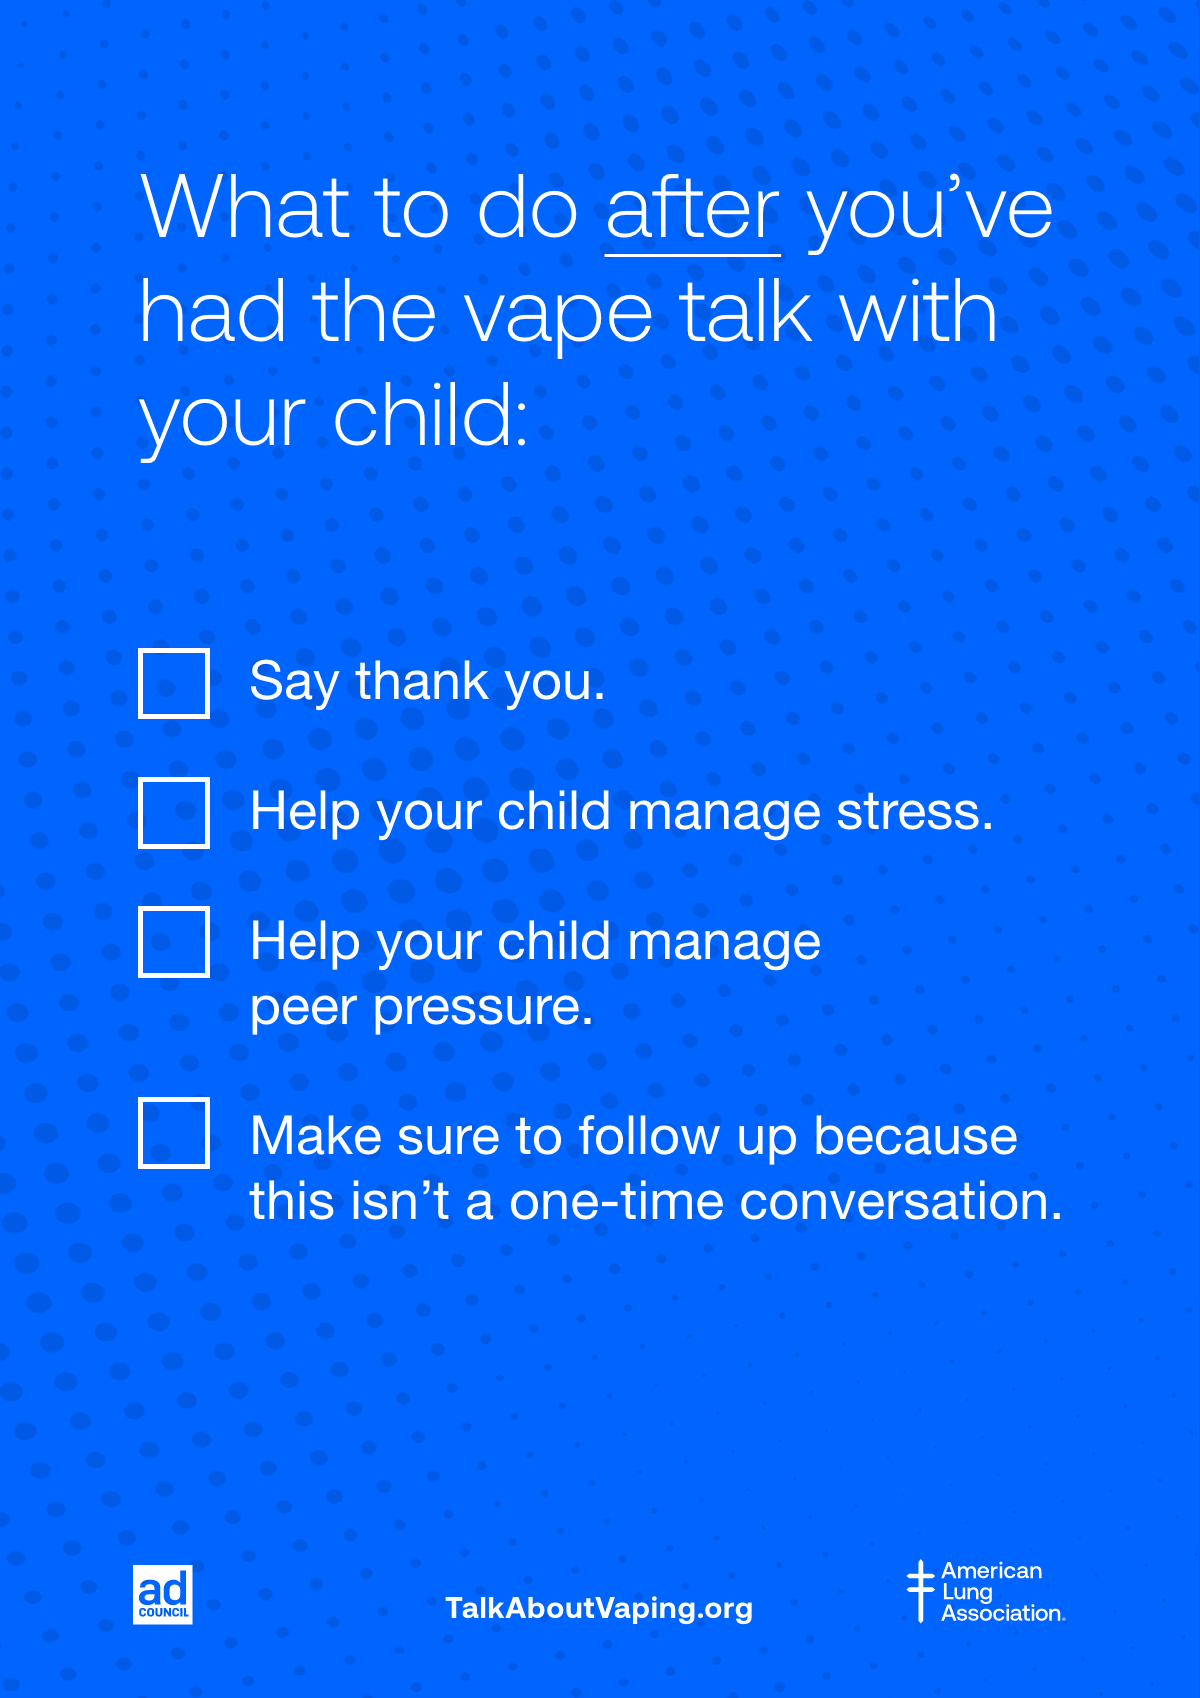 Tips after the vape talk